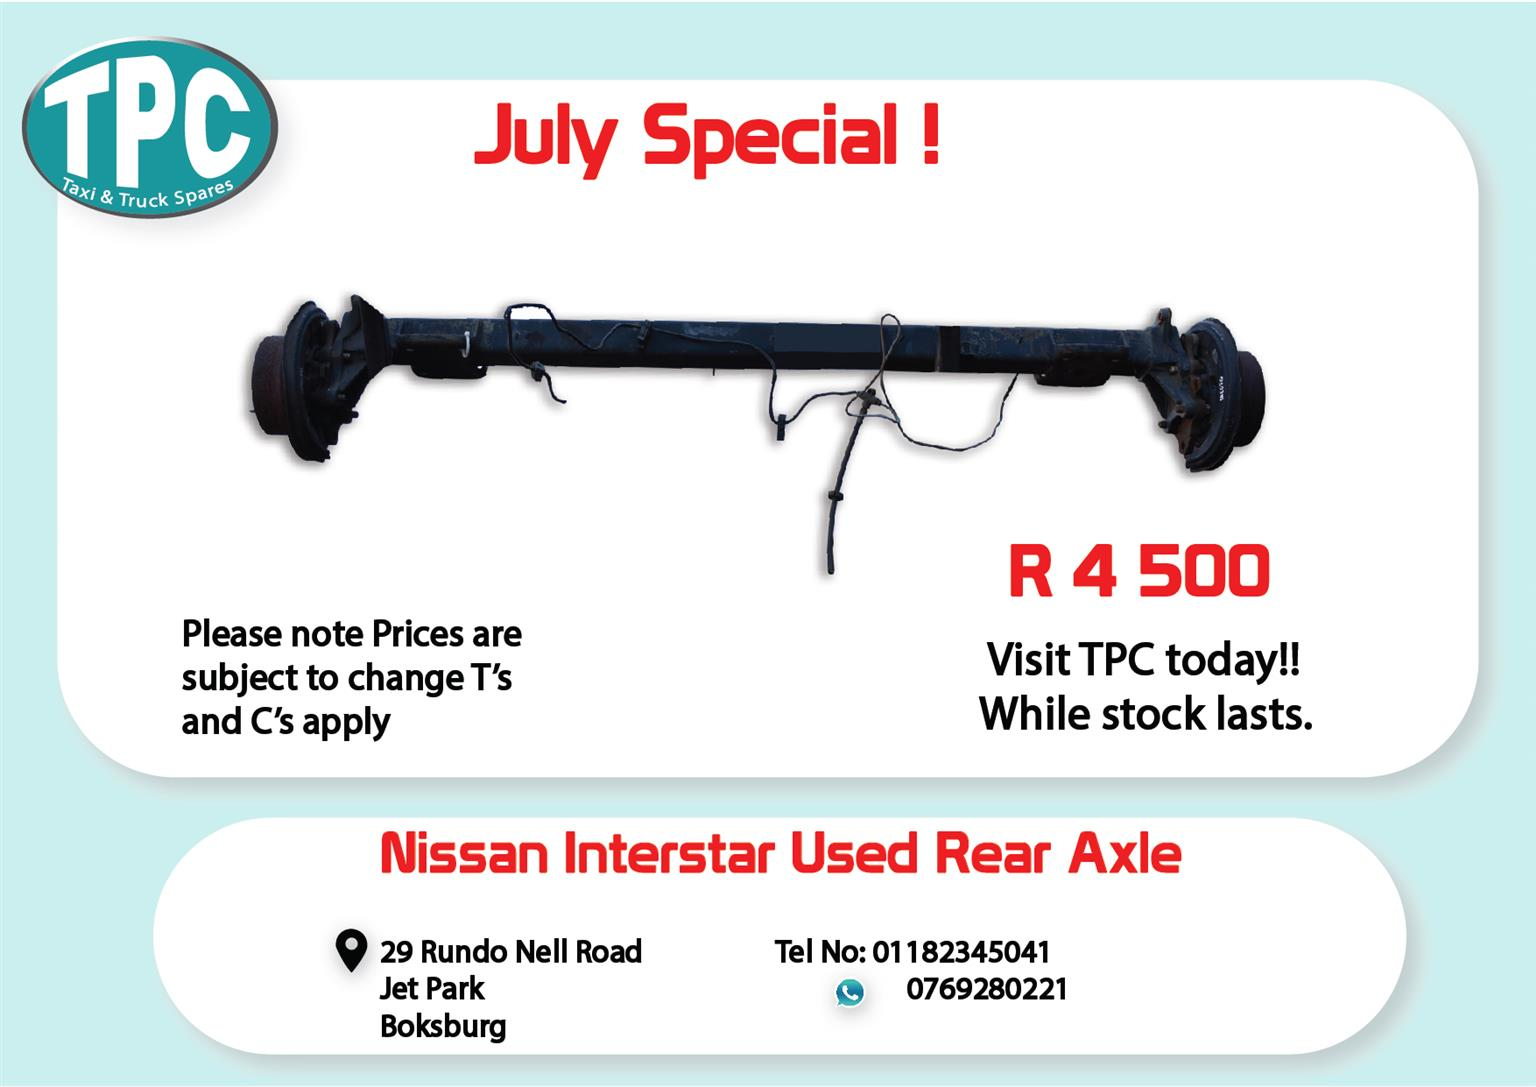 Nissan Interstar Rear Axle for Sale at TPC